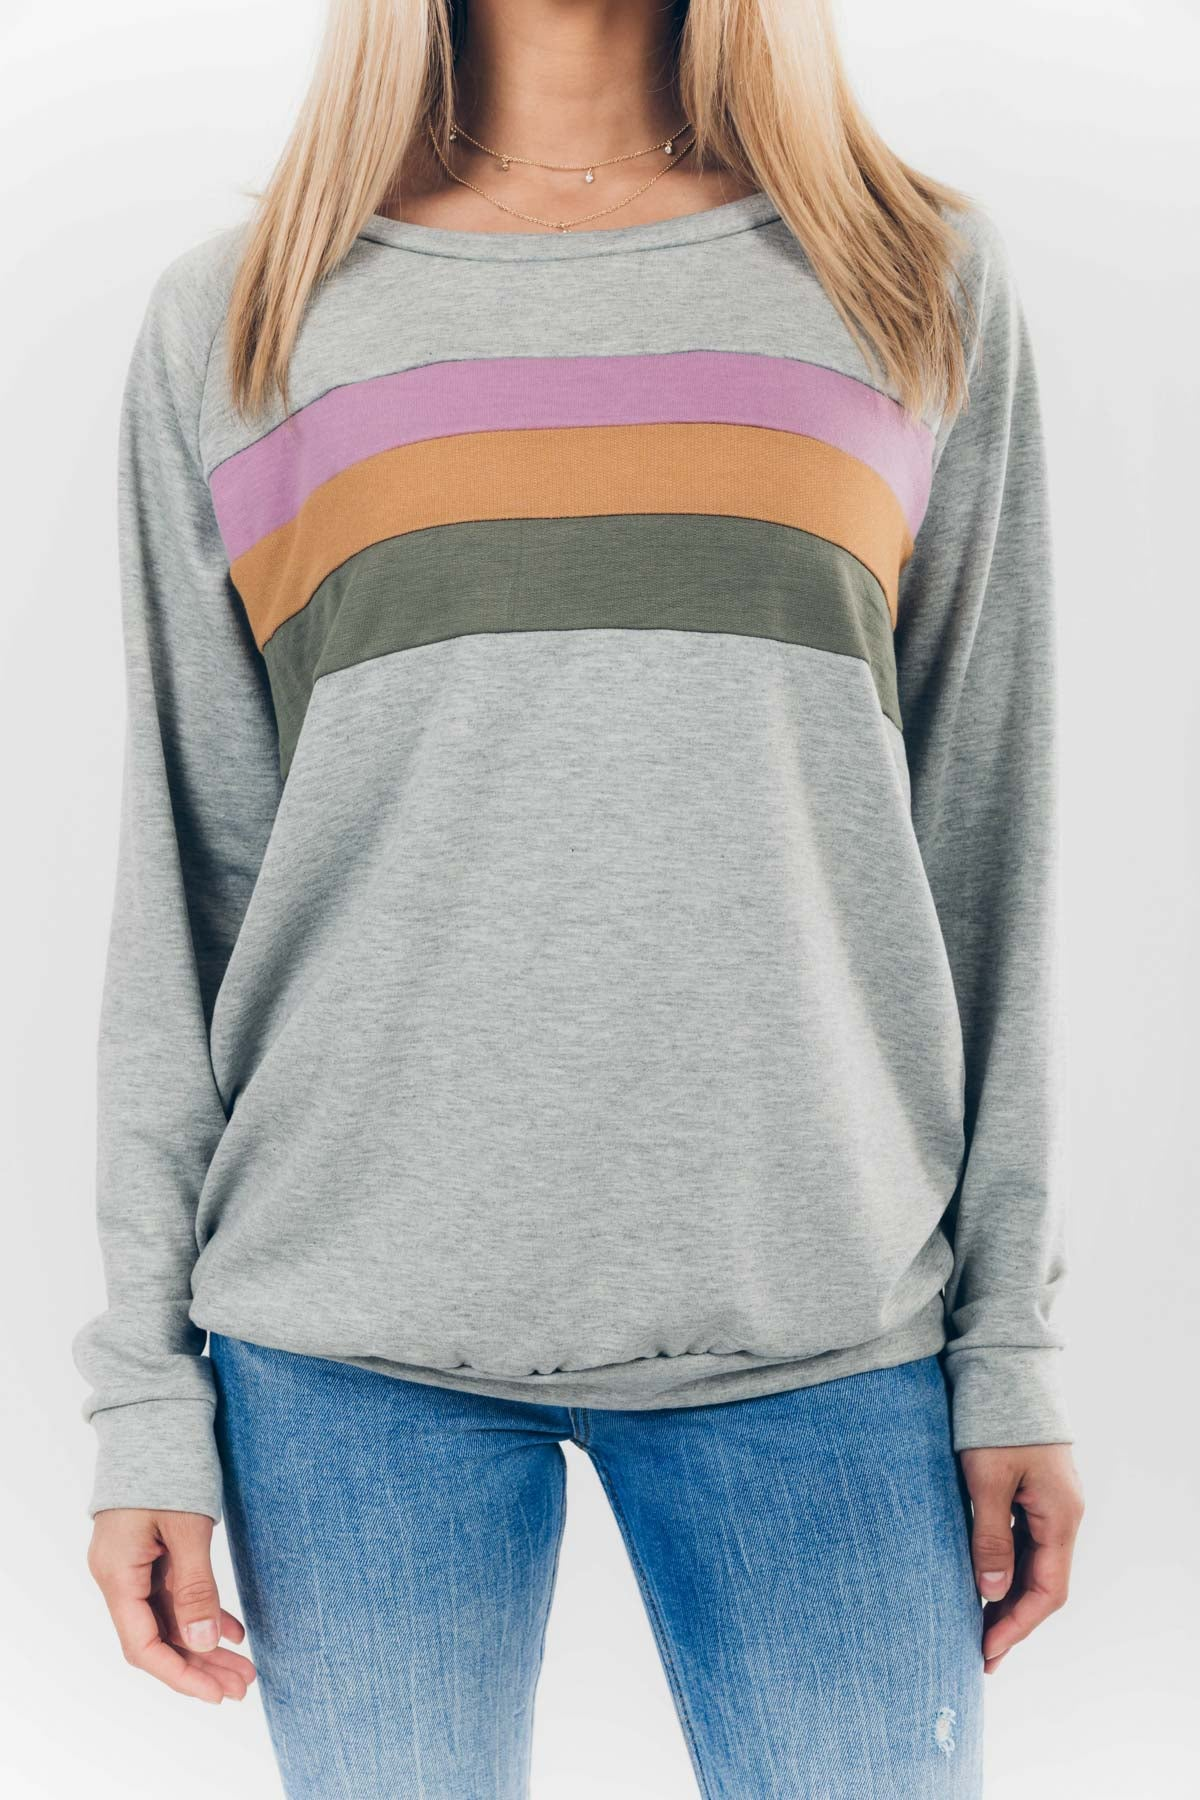 Boardwalk Dreams Sweatshirt in Heather Grey